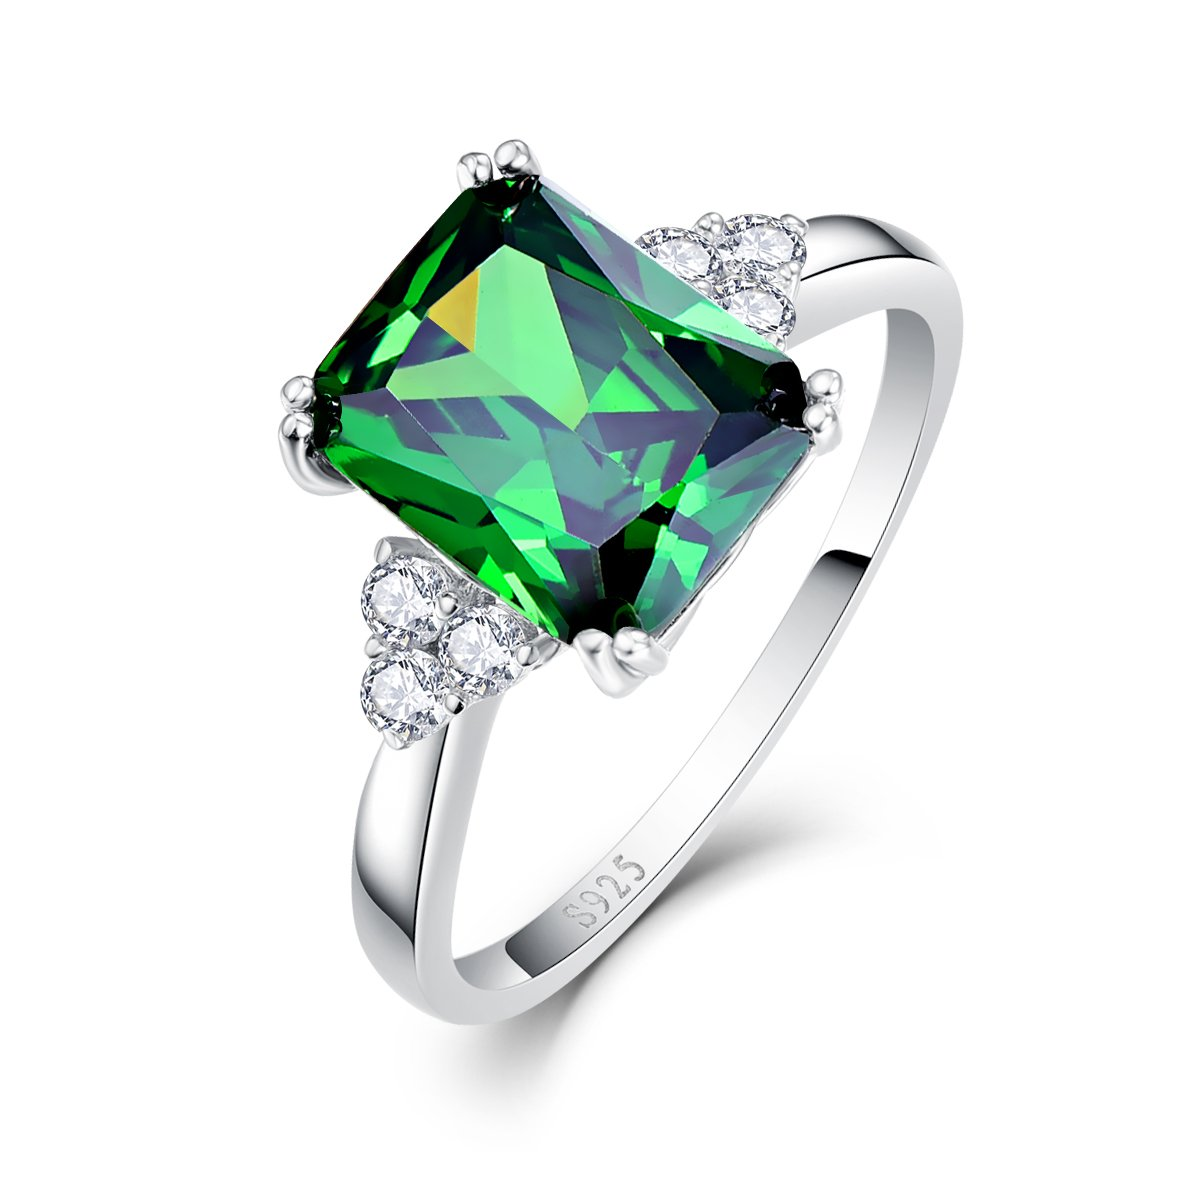 BONLAVIE Sterling Silver 5.3 ct Created Emerald Cubic Zirconia CZ Engagement Wedding Ring Size 6